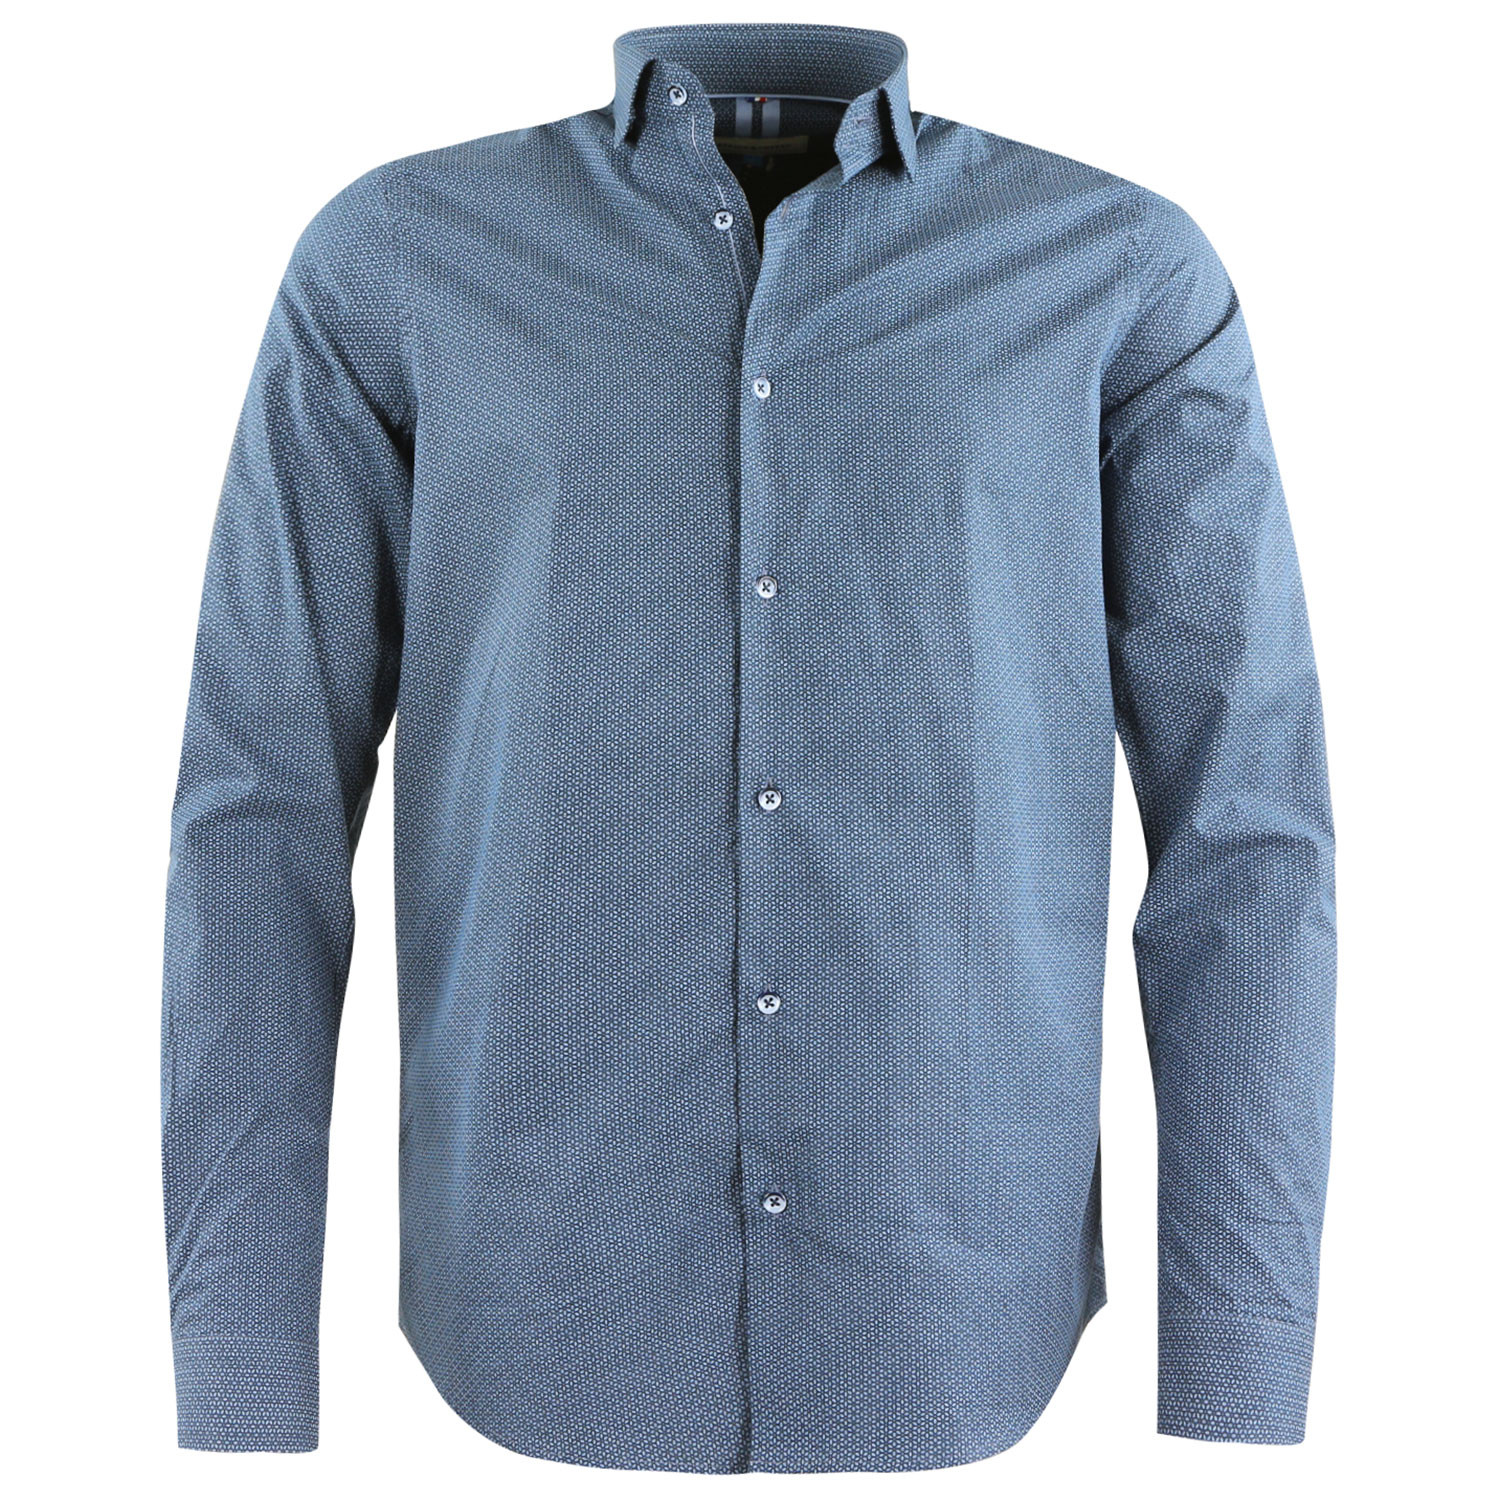 best deals on sale usa online retail prices Love Chemise Ml Homme BENSON AND CHERRY BLEU pas cher ...